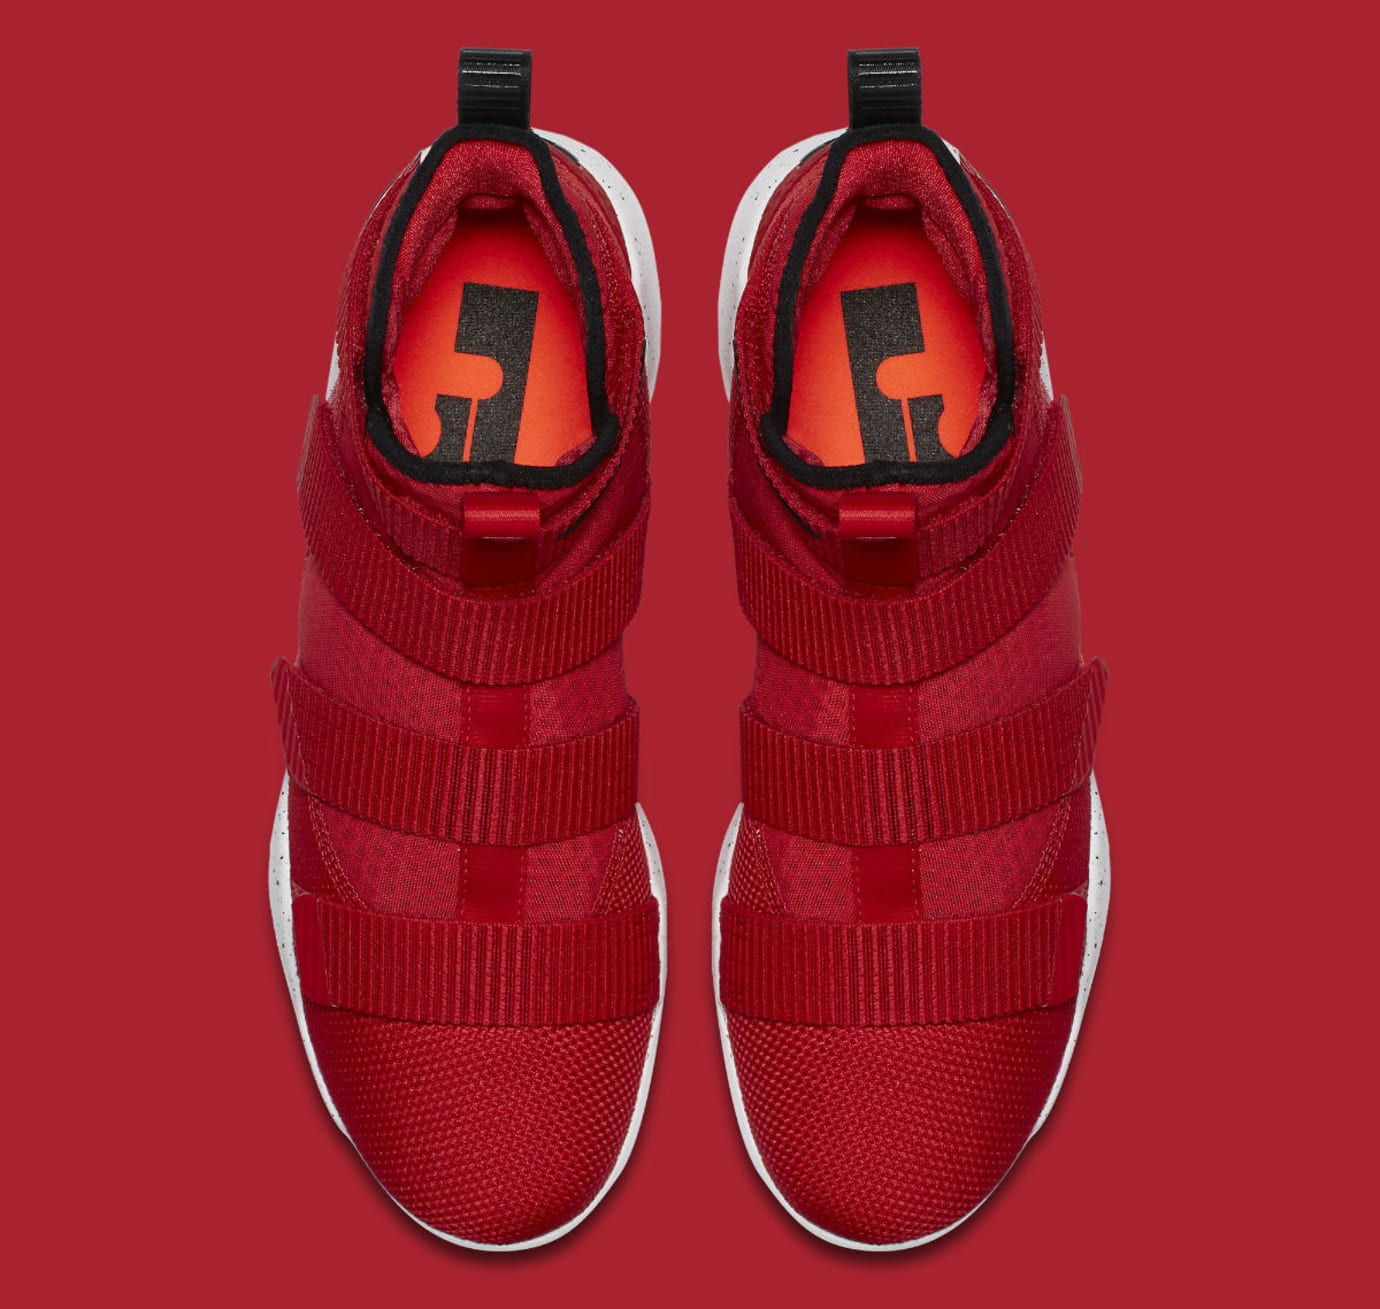 d741d1b4b213 Nike LeBron Soldier 11 University Red Release Date Top 897644-601